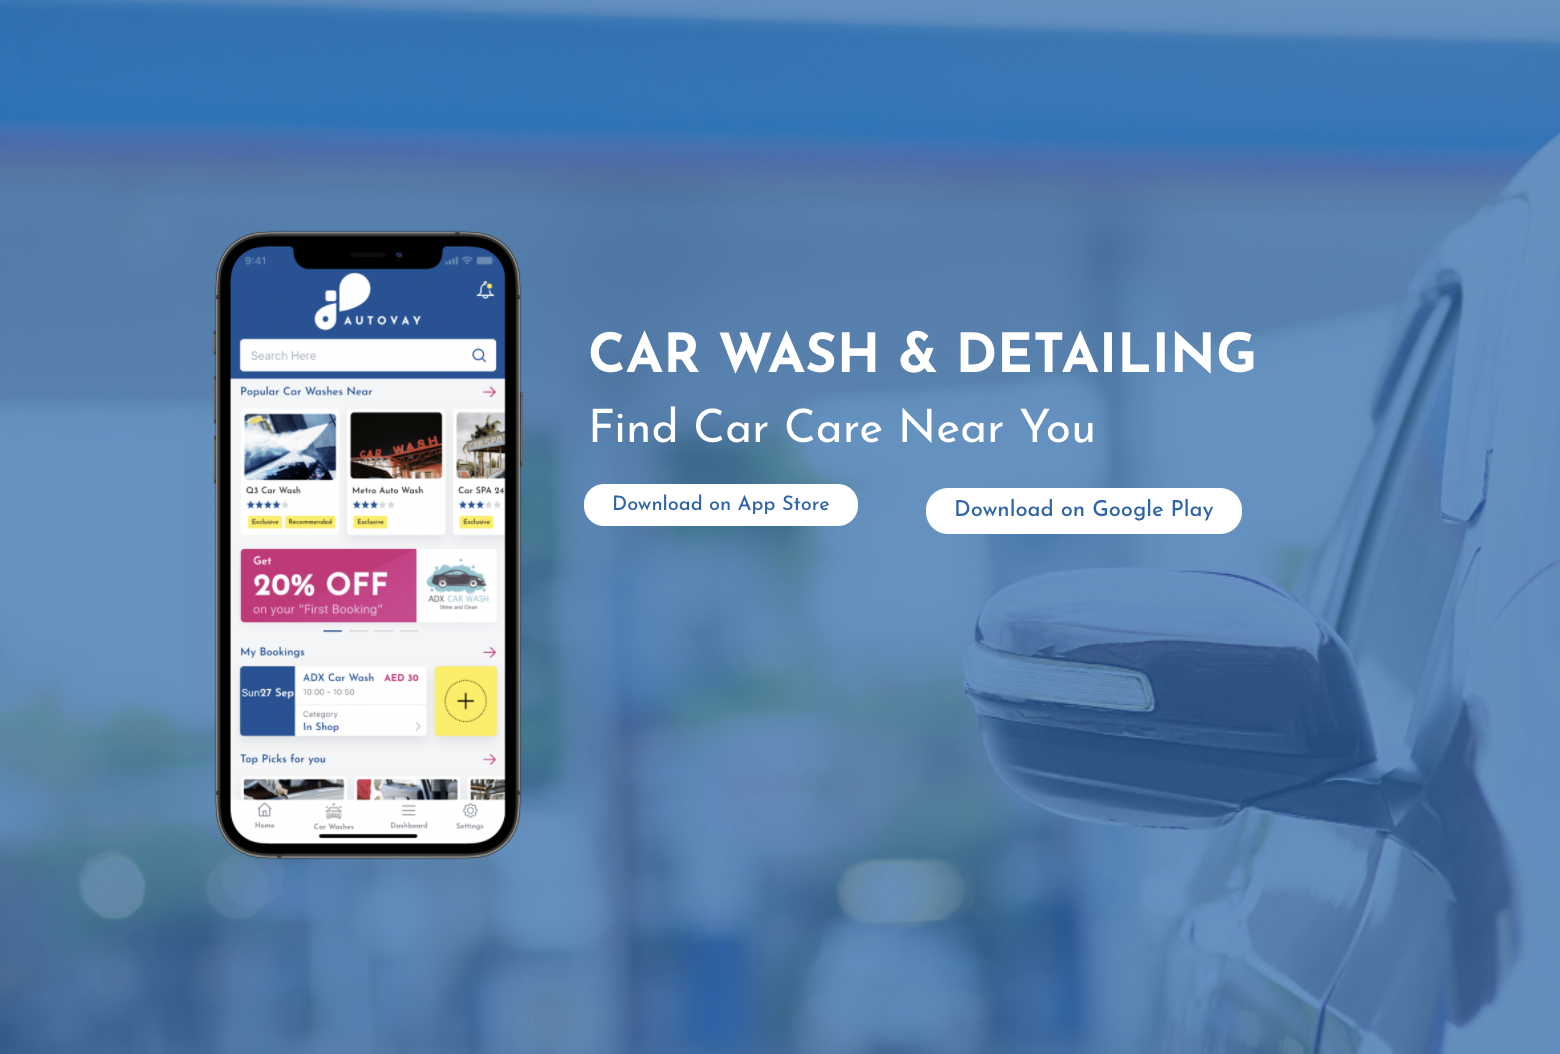 Autovay Mobile App Introduces UAE Residents To Car Wash and Detailing Services in the Region